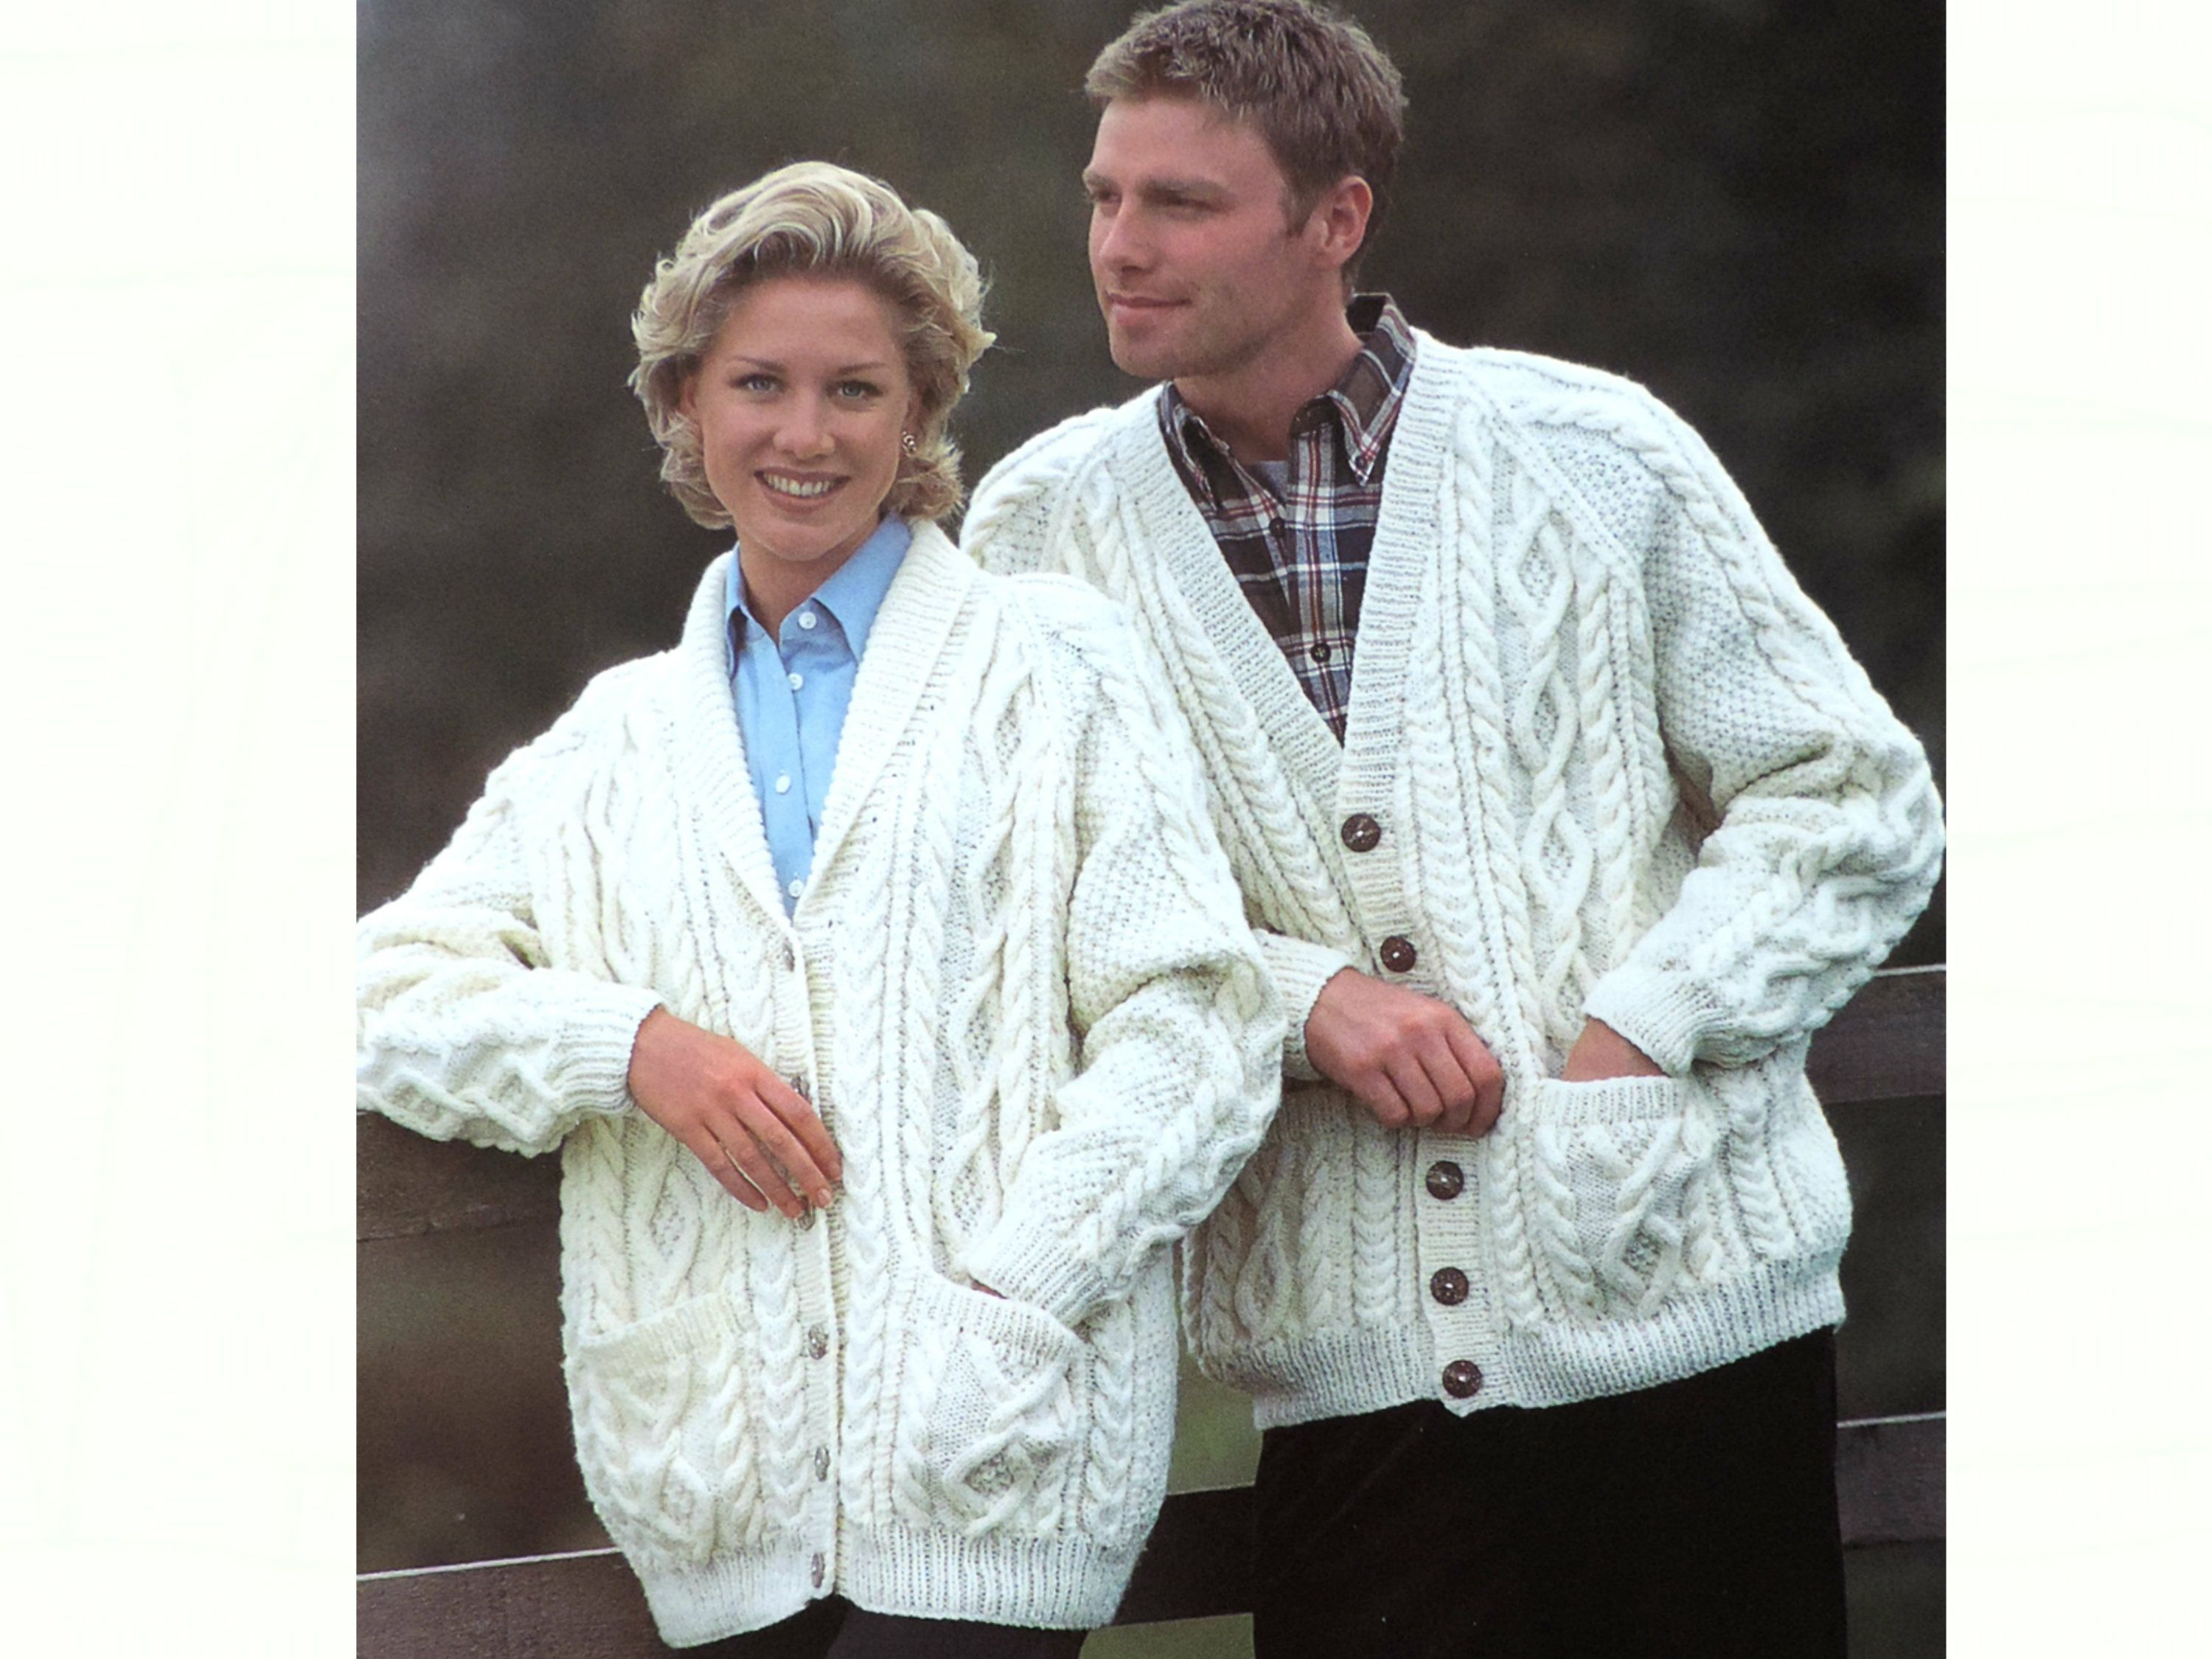 Womens Mens ARAN CABLE Jacket, Knitting Pattern PDF, Ladies and Mans Chunky Cardigan/Jacket with Pockets 32/34/36/38/40/42/44 inch chest